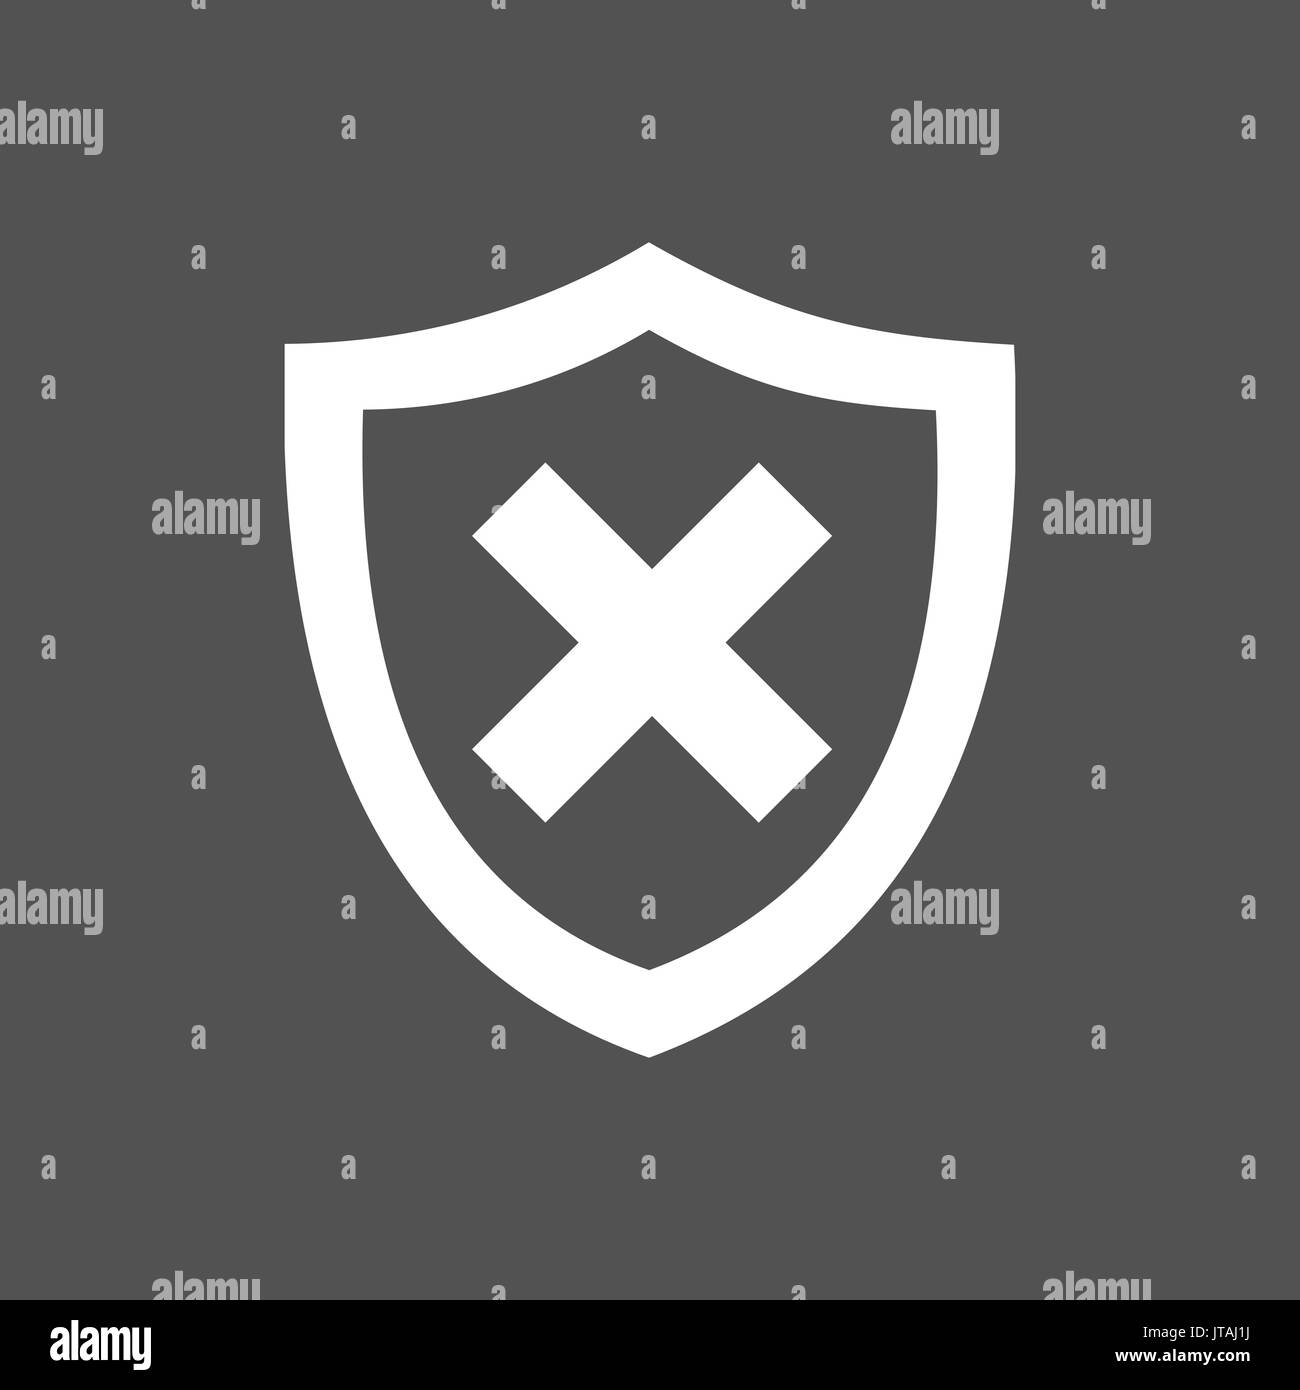 Unprotected shield icon on a dark background - Stock Image